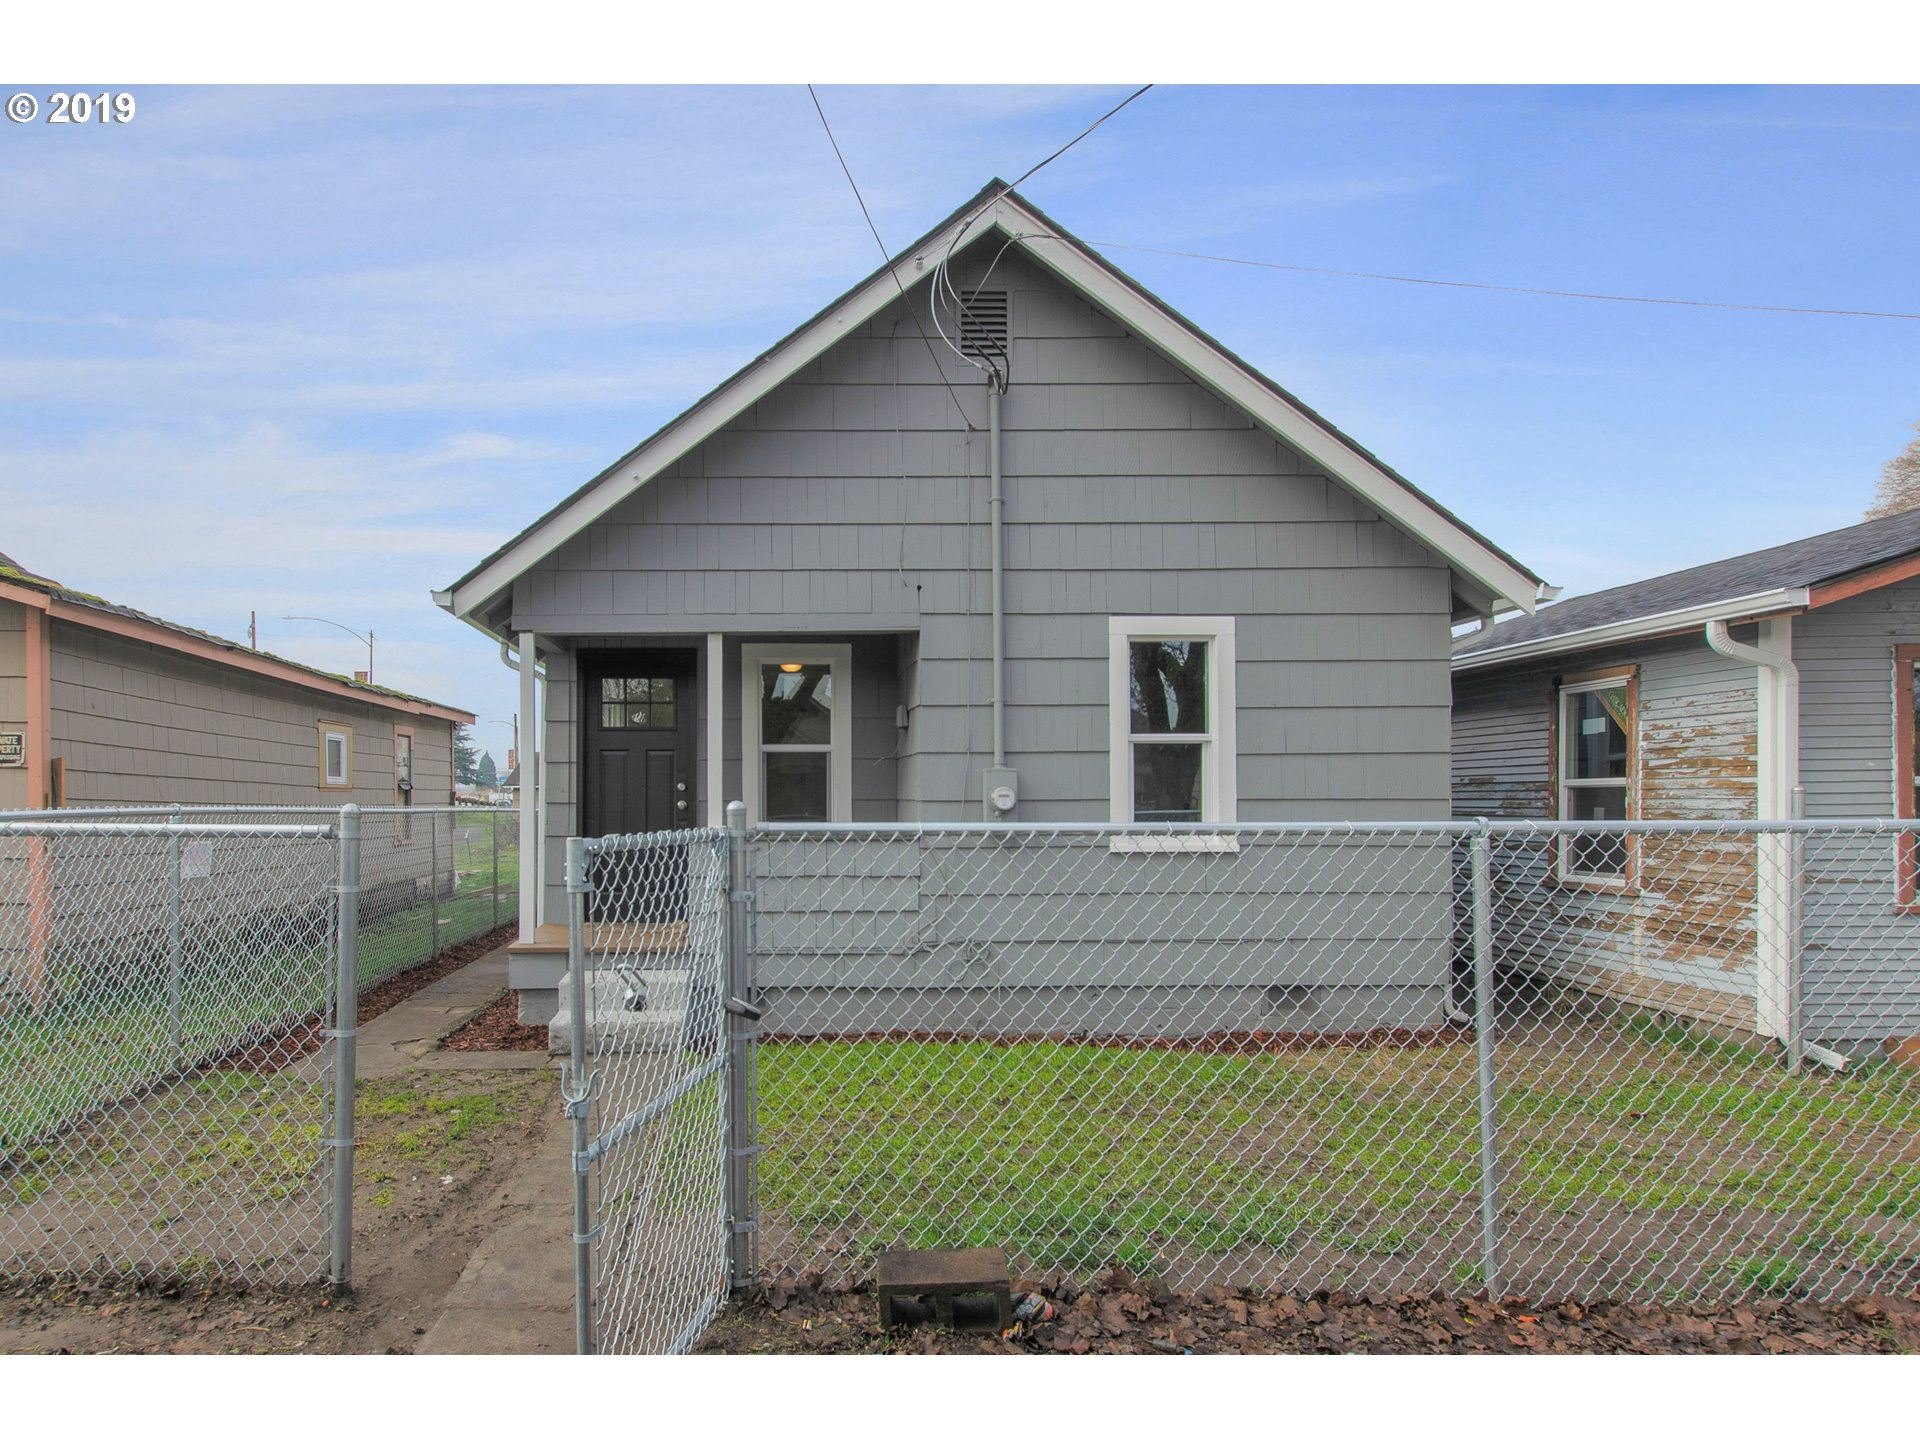 309 NW 3RD AVE, Kelso, WA 98626 - MLS#: 19152705